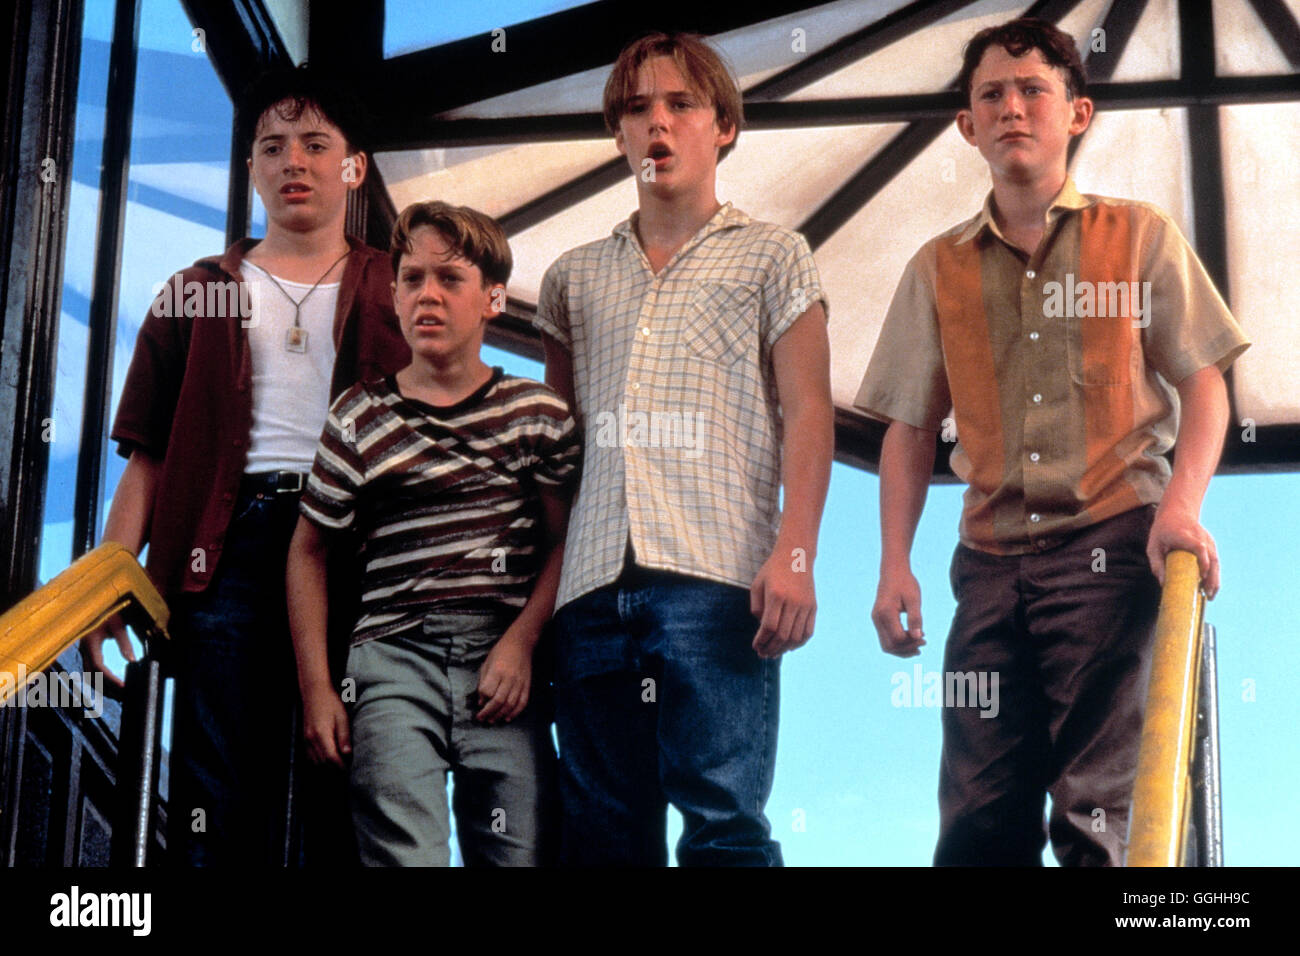 Sleepers Sleepers Usa 1996 Barry Levinson Szene Regie Barry Stock Photo Alamy